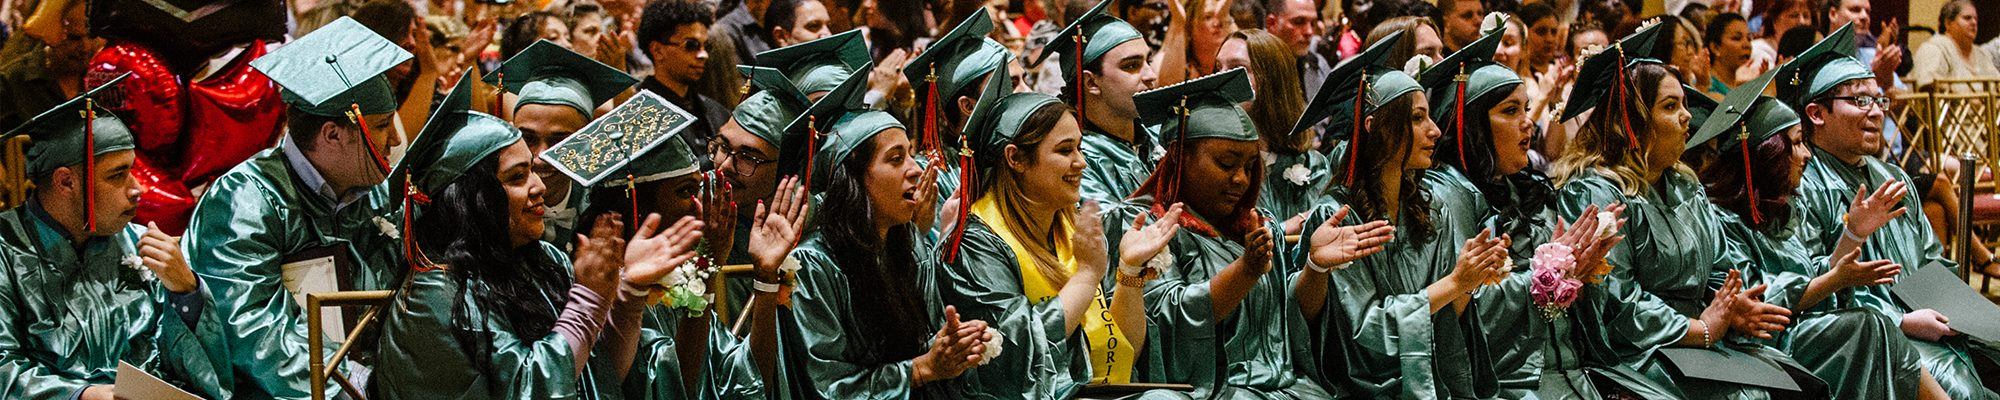 Students clapping during commencement